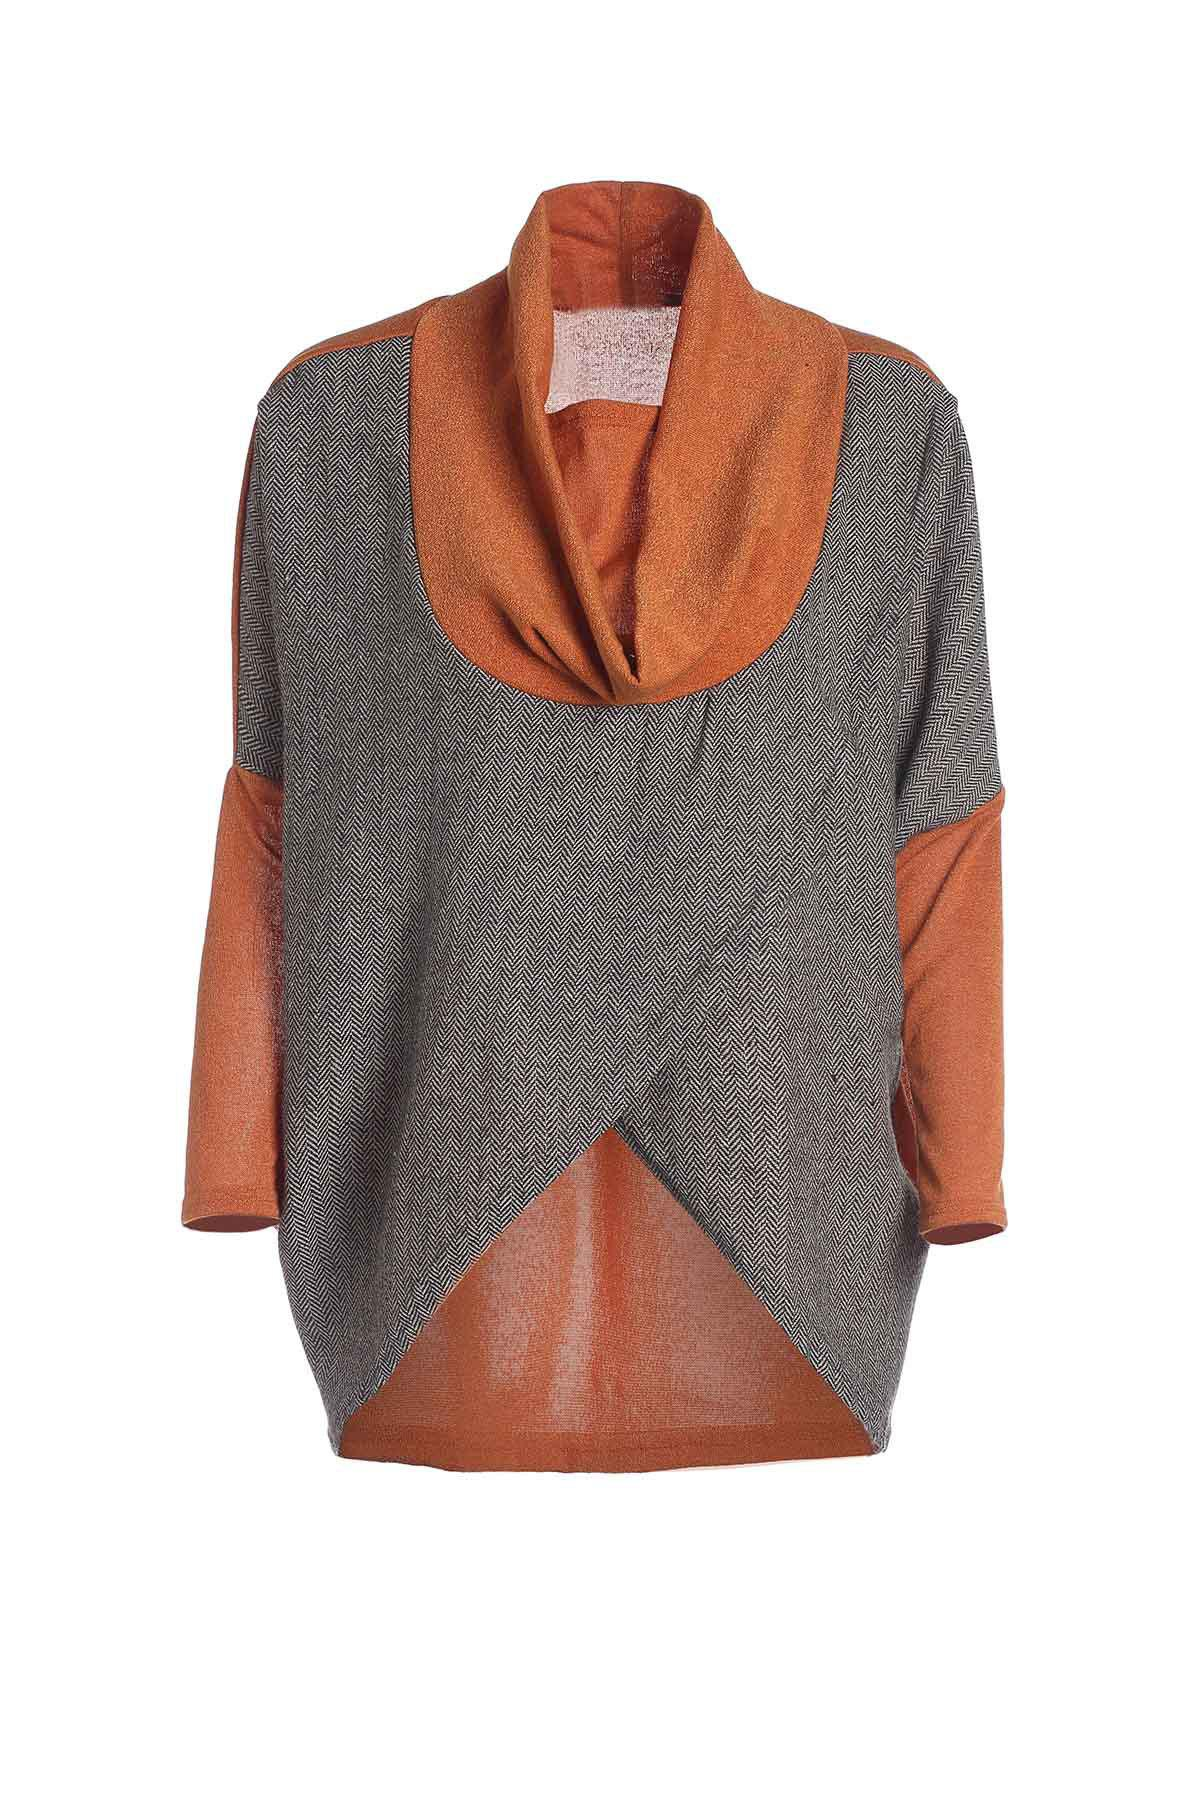 Stylish Cowl Neck Long Sleeves Color Match Batwing Irregular Design Cotton Blend Womens SweaterWOMEN<br><br>Size: ONE SIZE; Color: JACINTH; Type: Pullovers; Material: Acrylic; Sleeve Length: Full; Collar: Cowl Neck; Style: Casual; Pattern Type: Patchwork; Season: Fall,Spring; Weight: 0.450kg; Package Contents: 1 x Sweater;